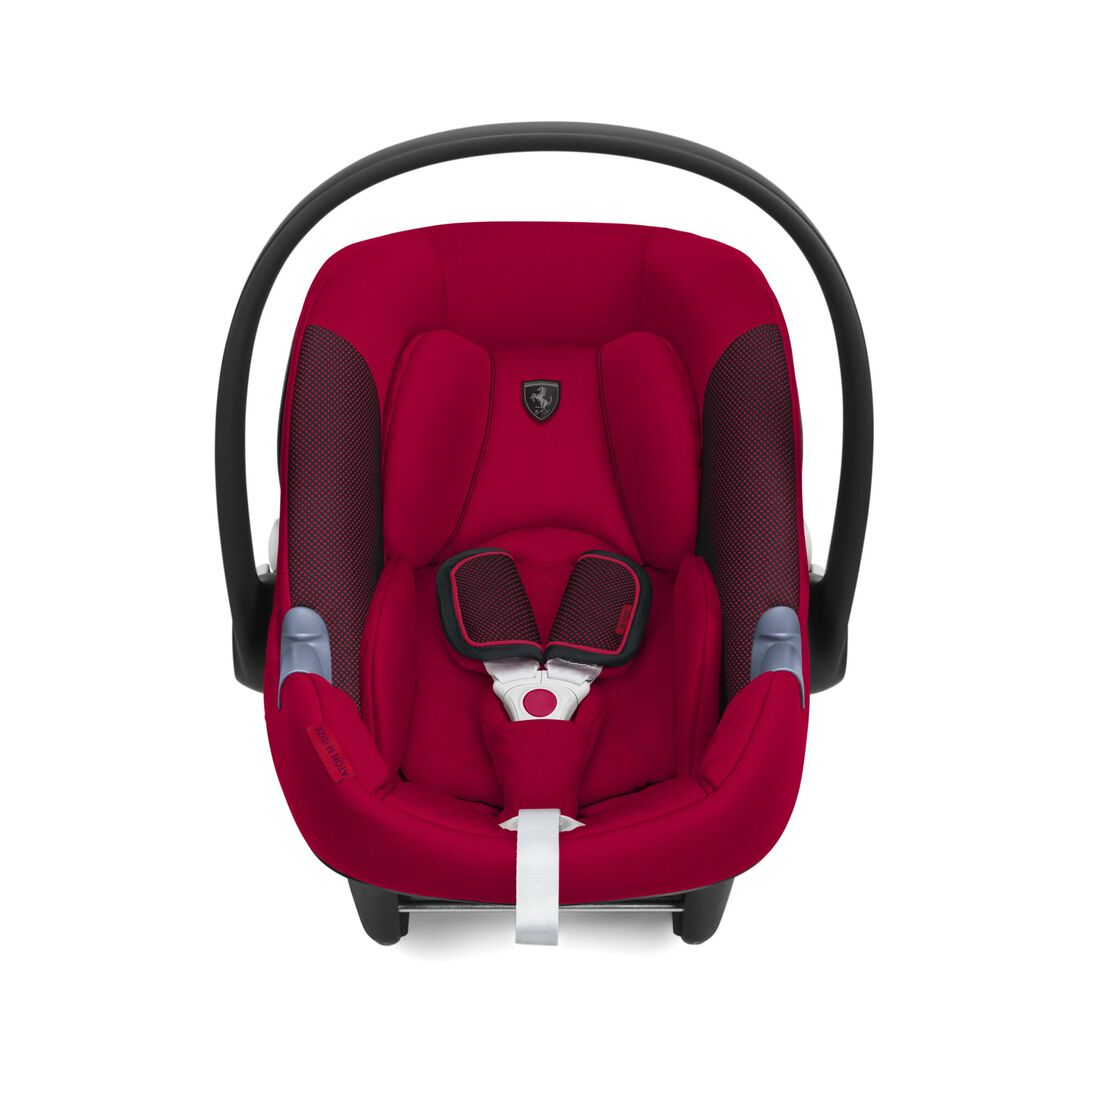 CYBEX Aton M i-Size - Ferrari Racing Red in Ferrari Racing Red large image number 2